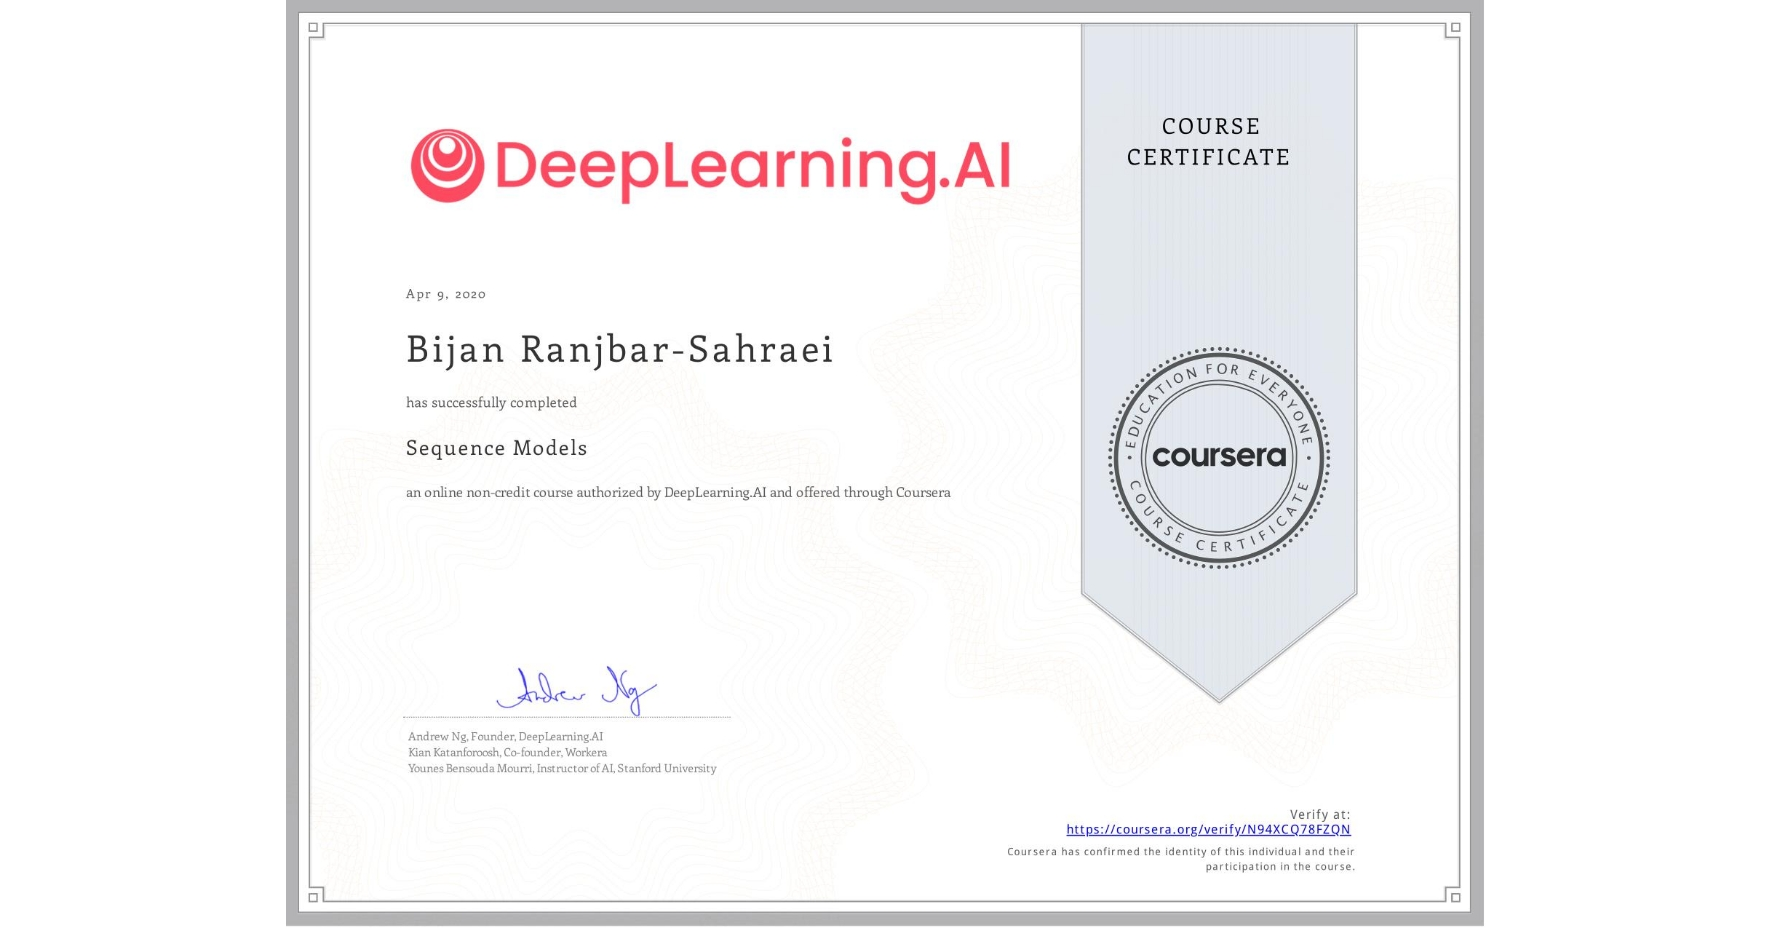 View certificate for Bijan Ranjbar-Sahraei, Sequence Models, an online non-credit course authorized by DeepLearning.AI and offered through Coursera